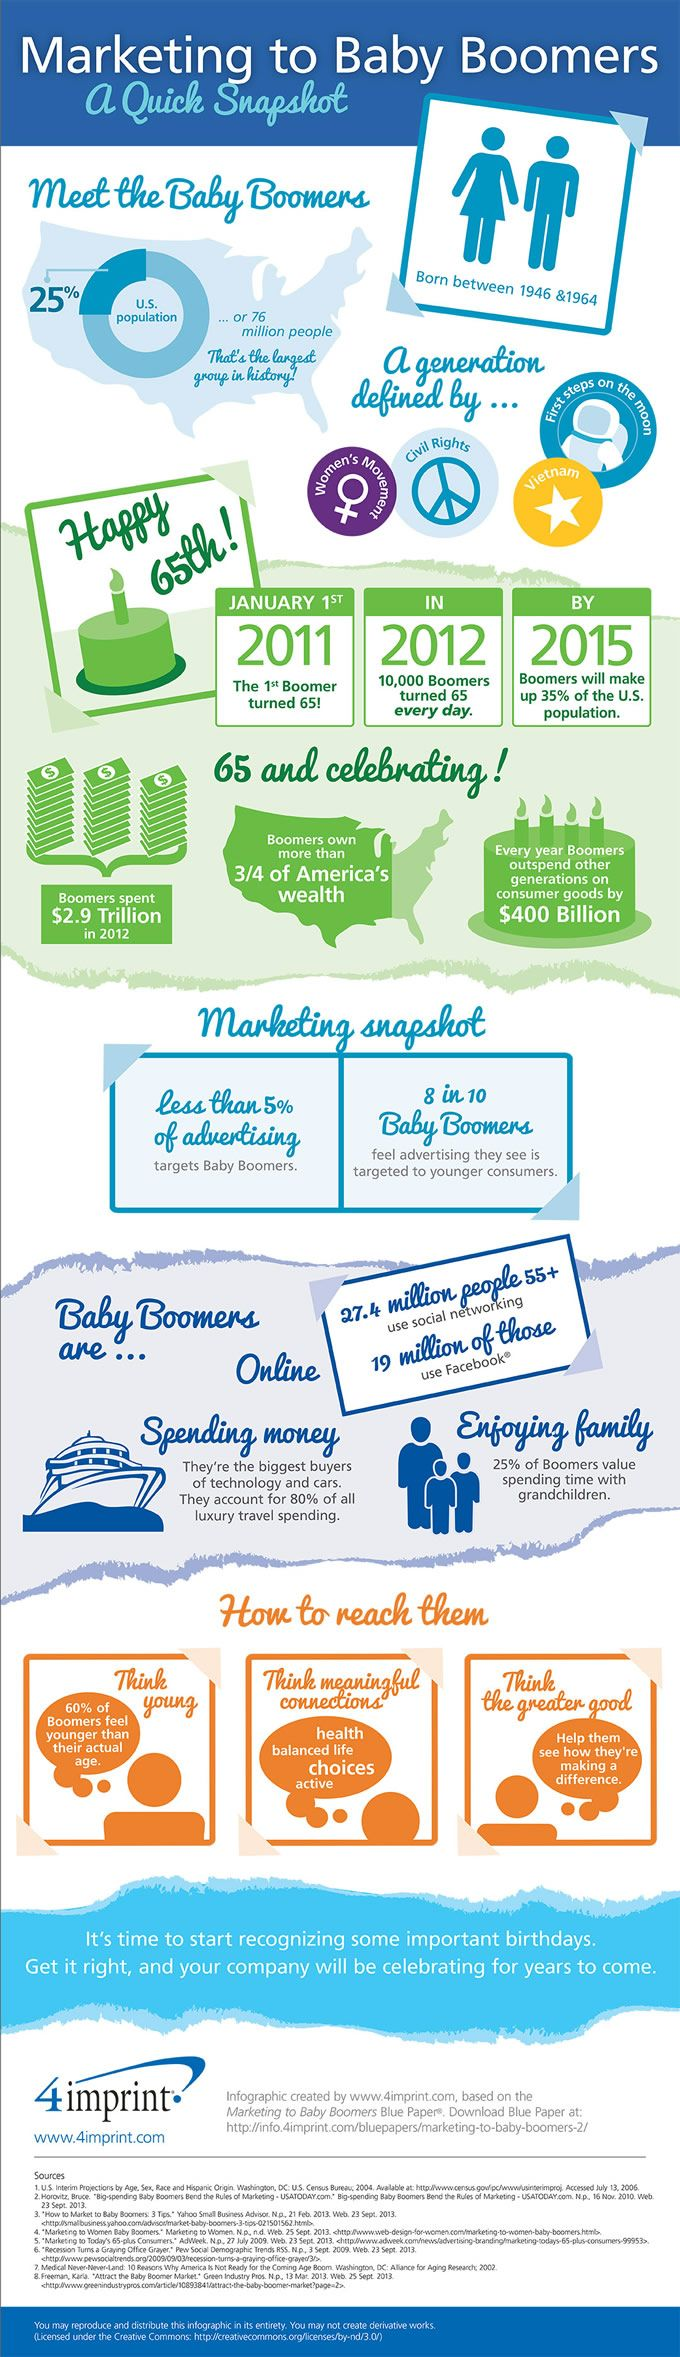 Marketing to Baby Boomers | Statistics | Pinterest ...